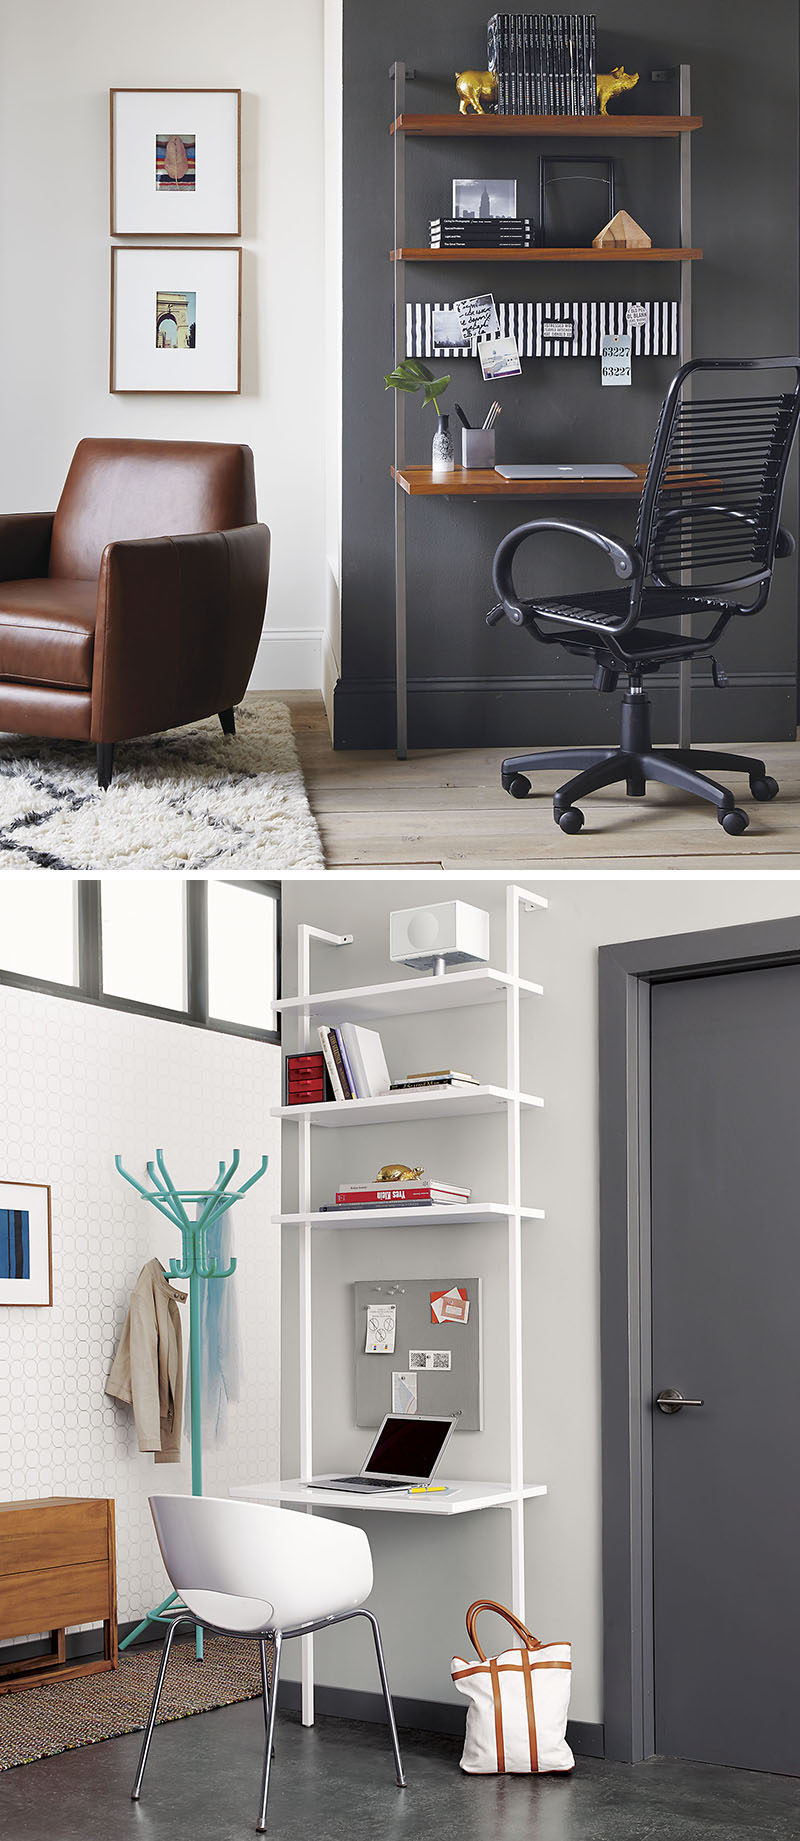 office wall mounted shelving. 16 Wall Desk Ideas That Are Great For Small Spaces // This Shelving System Mounts Office Mounted